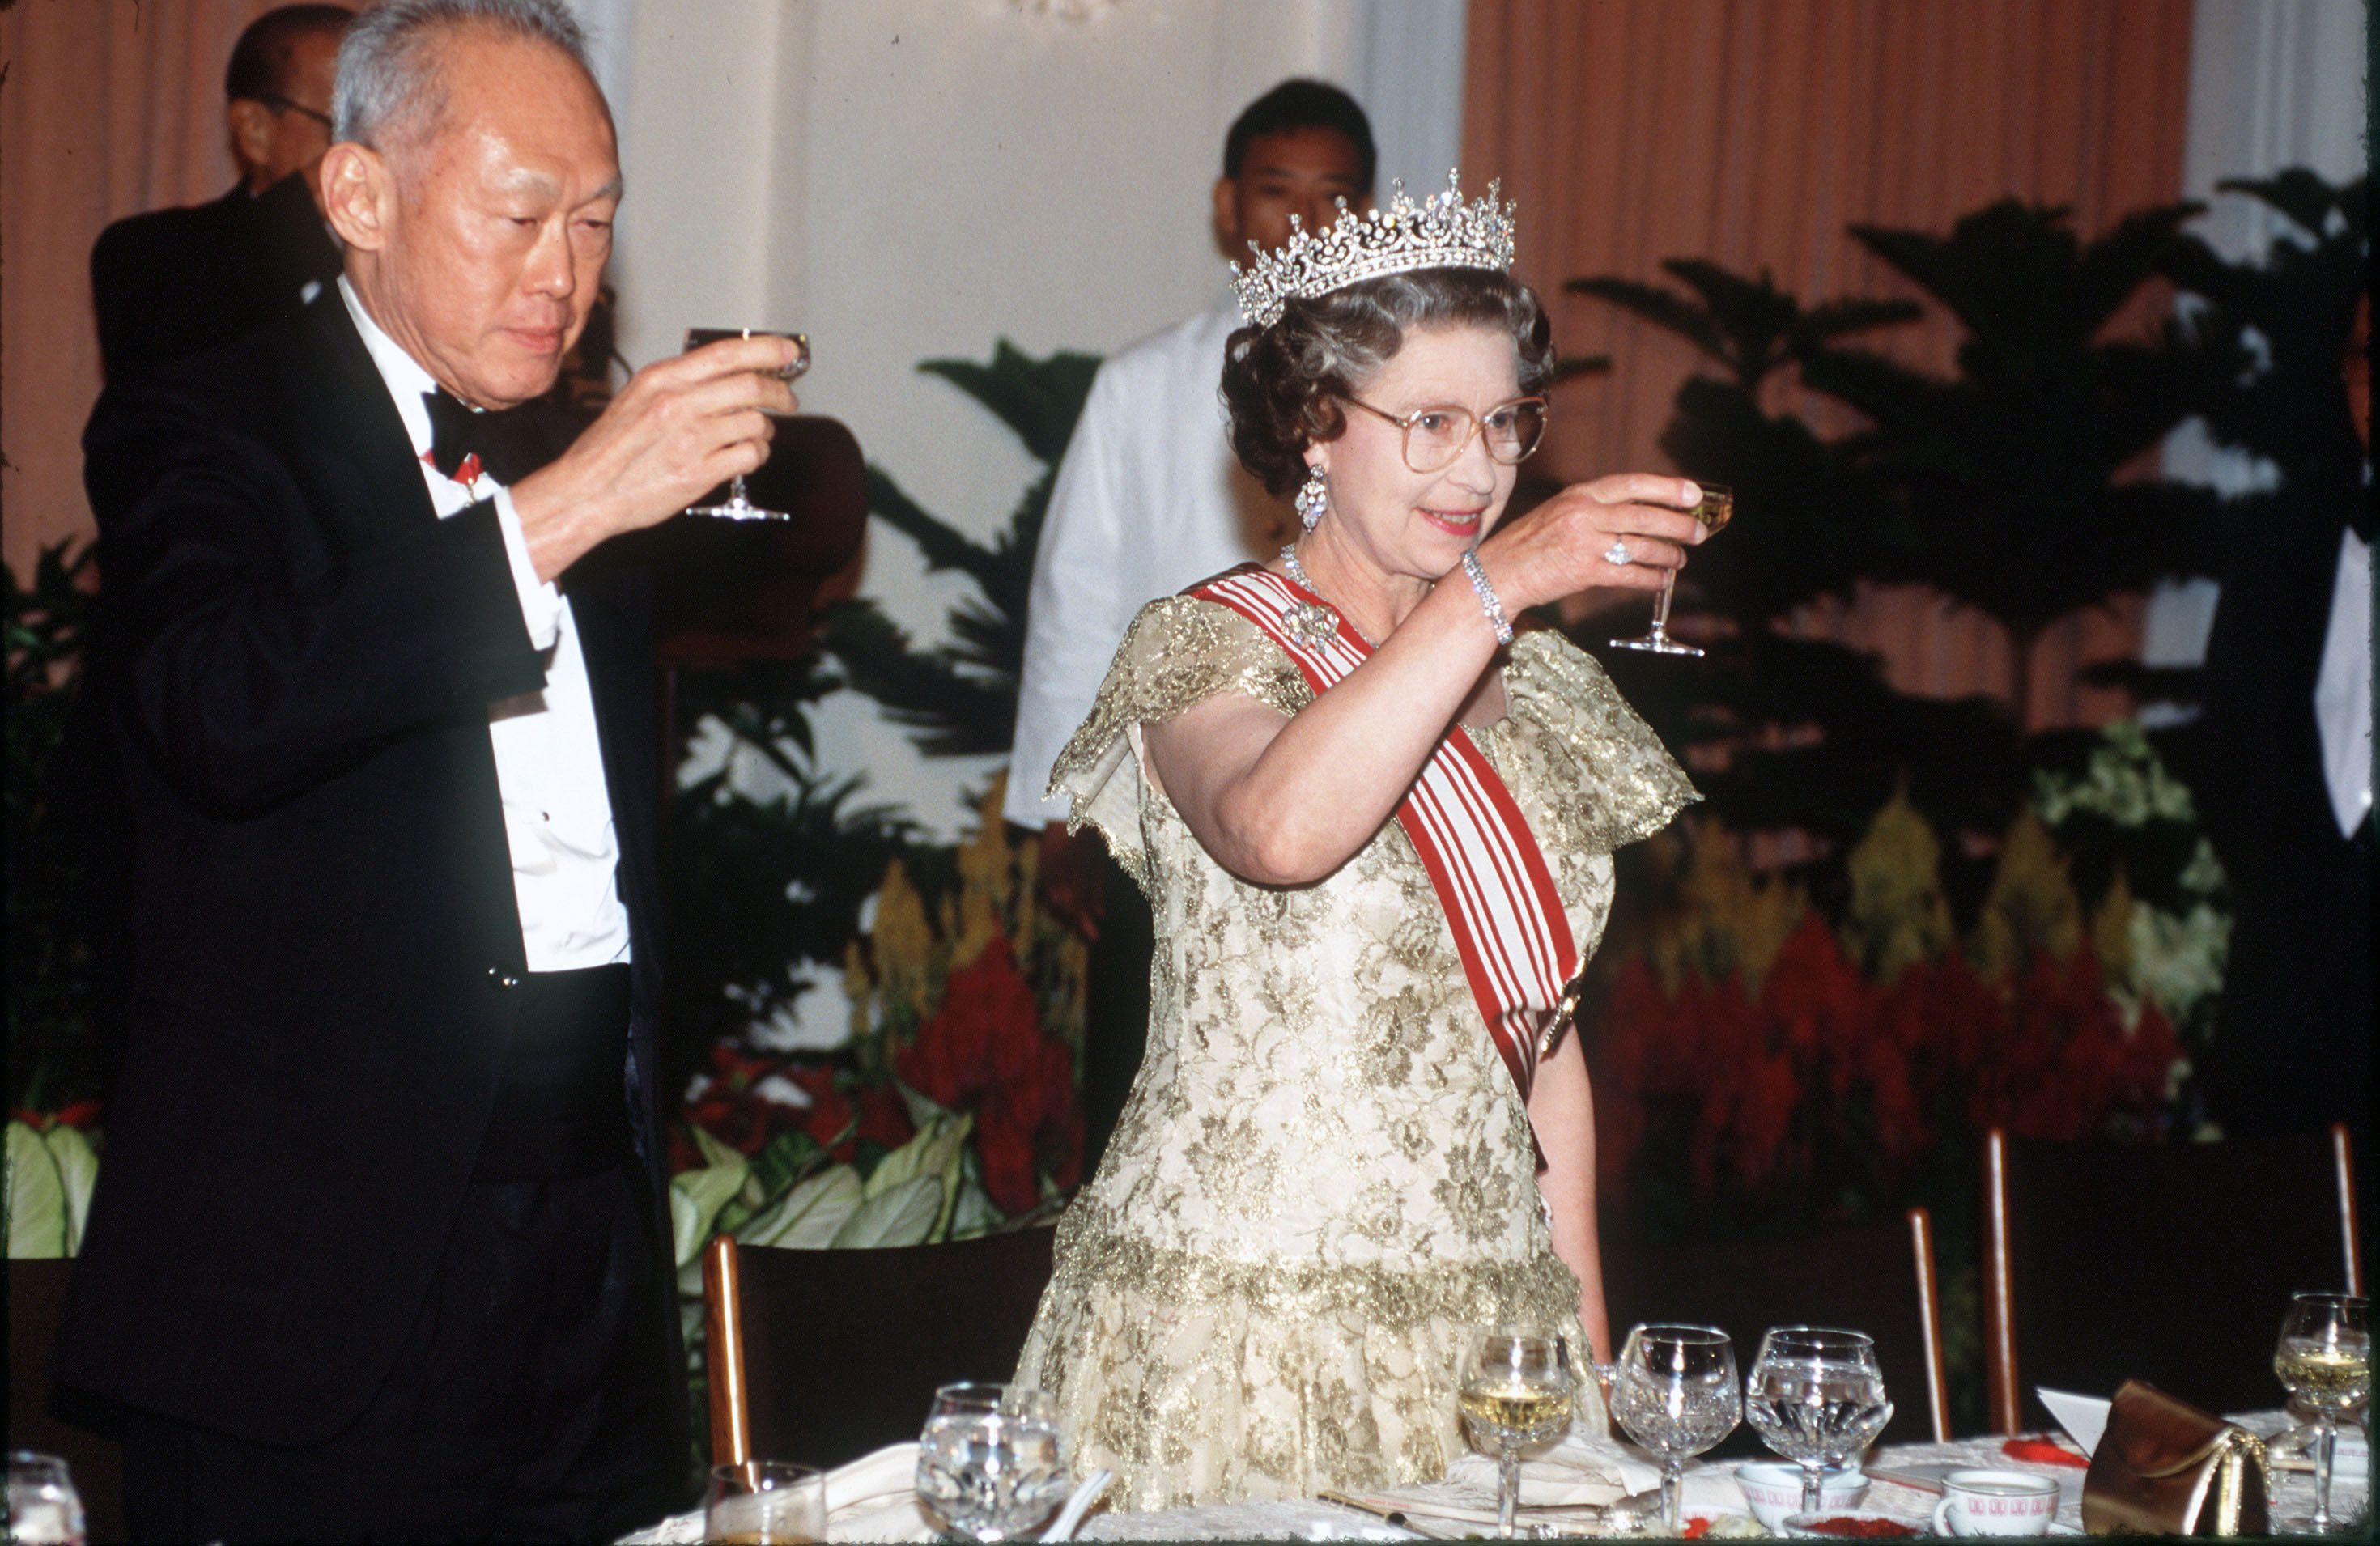 The Queen Starts Every Christmas with a Martini, According to This Royal Documentary